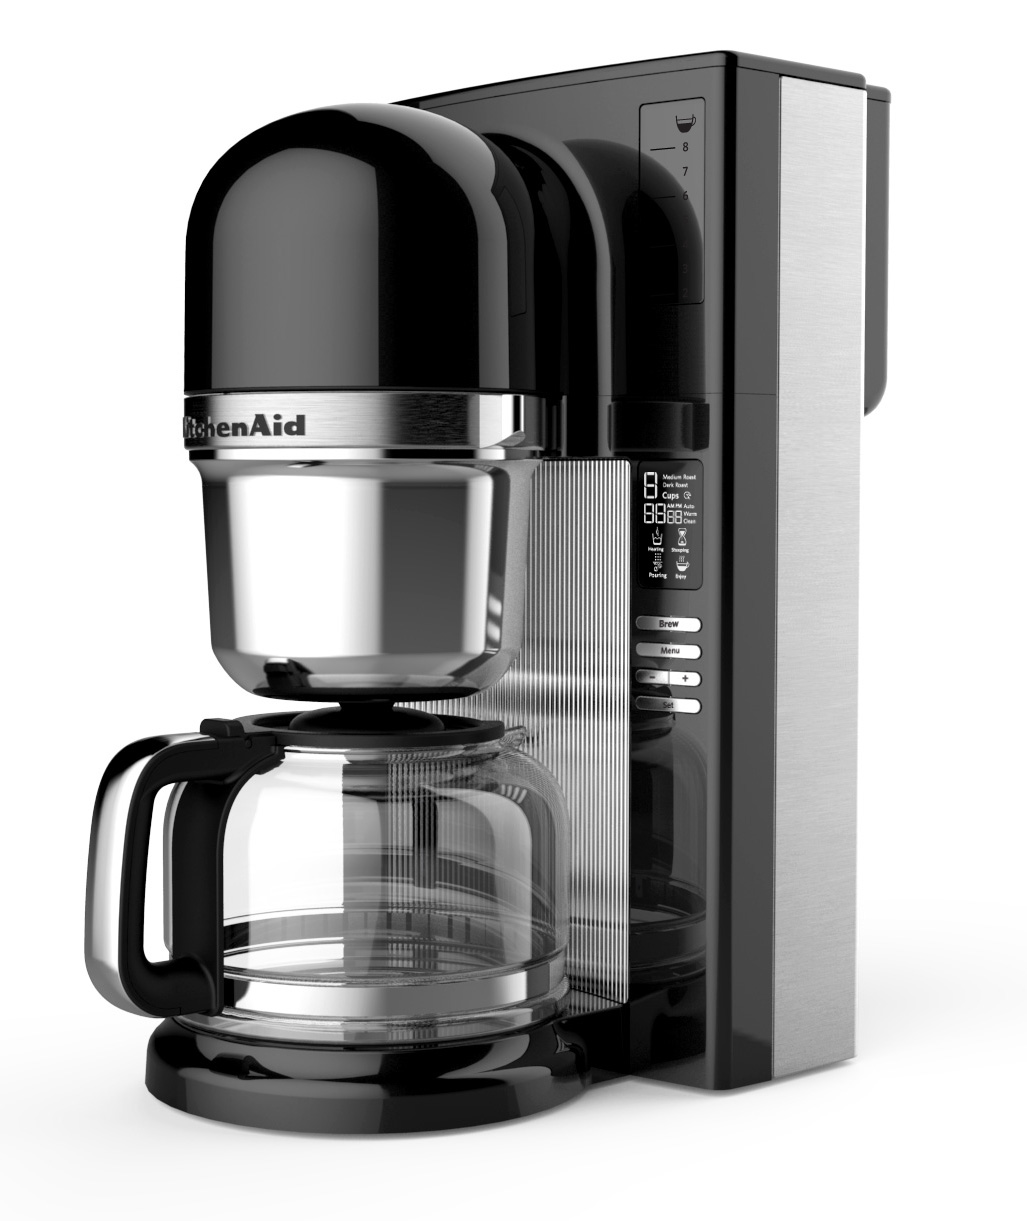 New kitchenaid coffee maker brings the barista home get New coffee machine